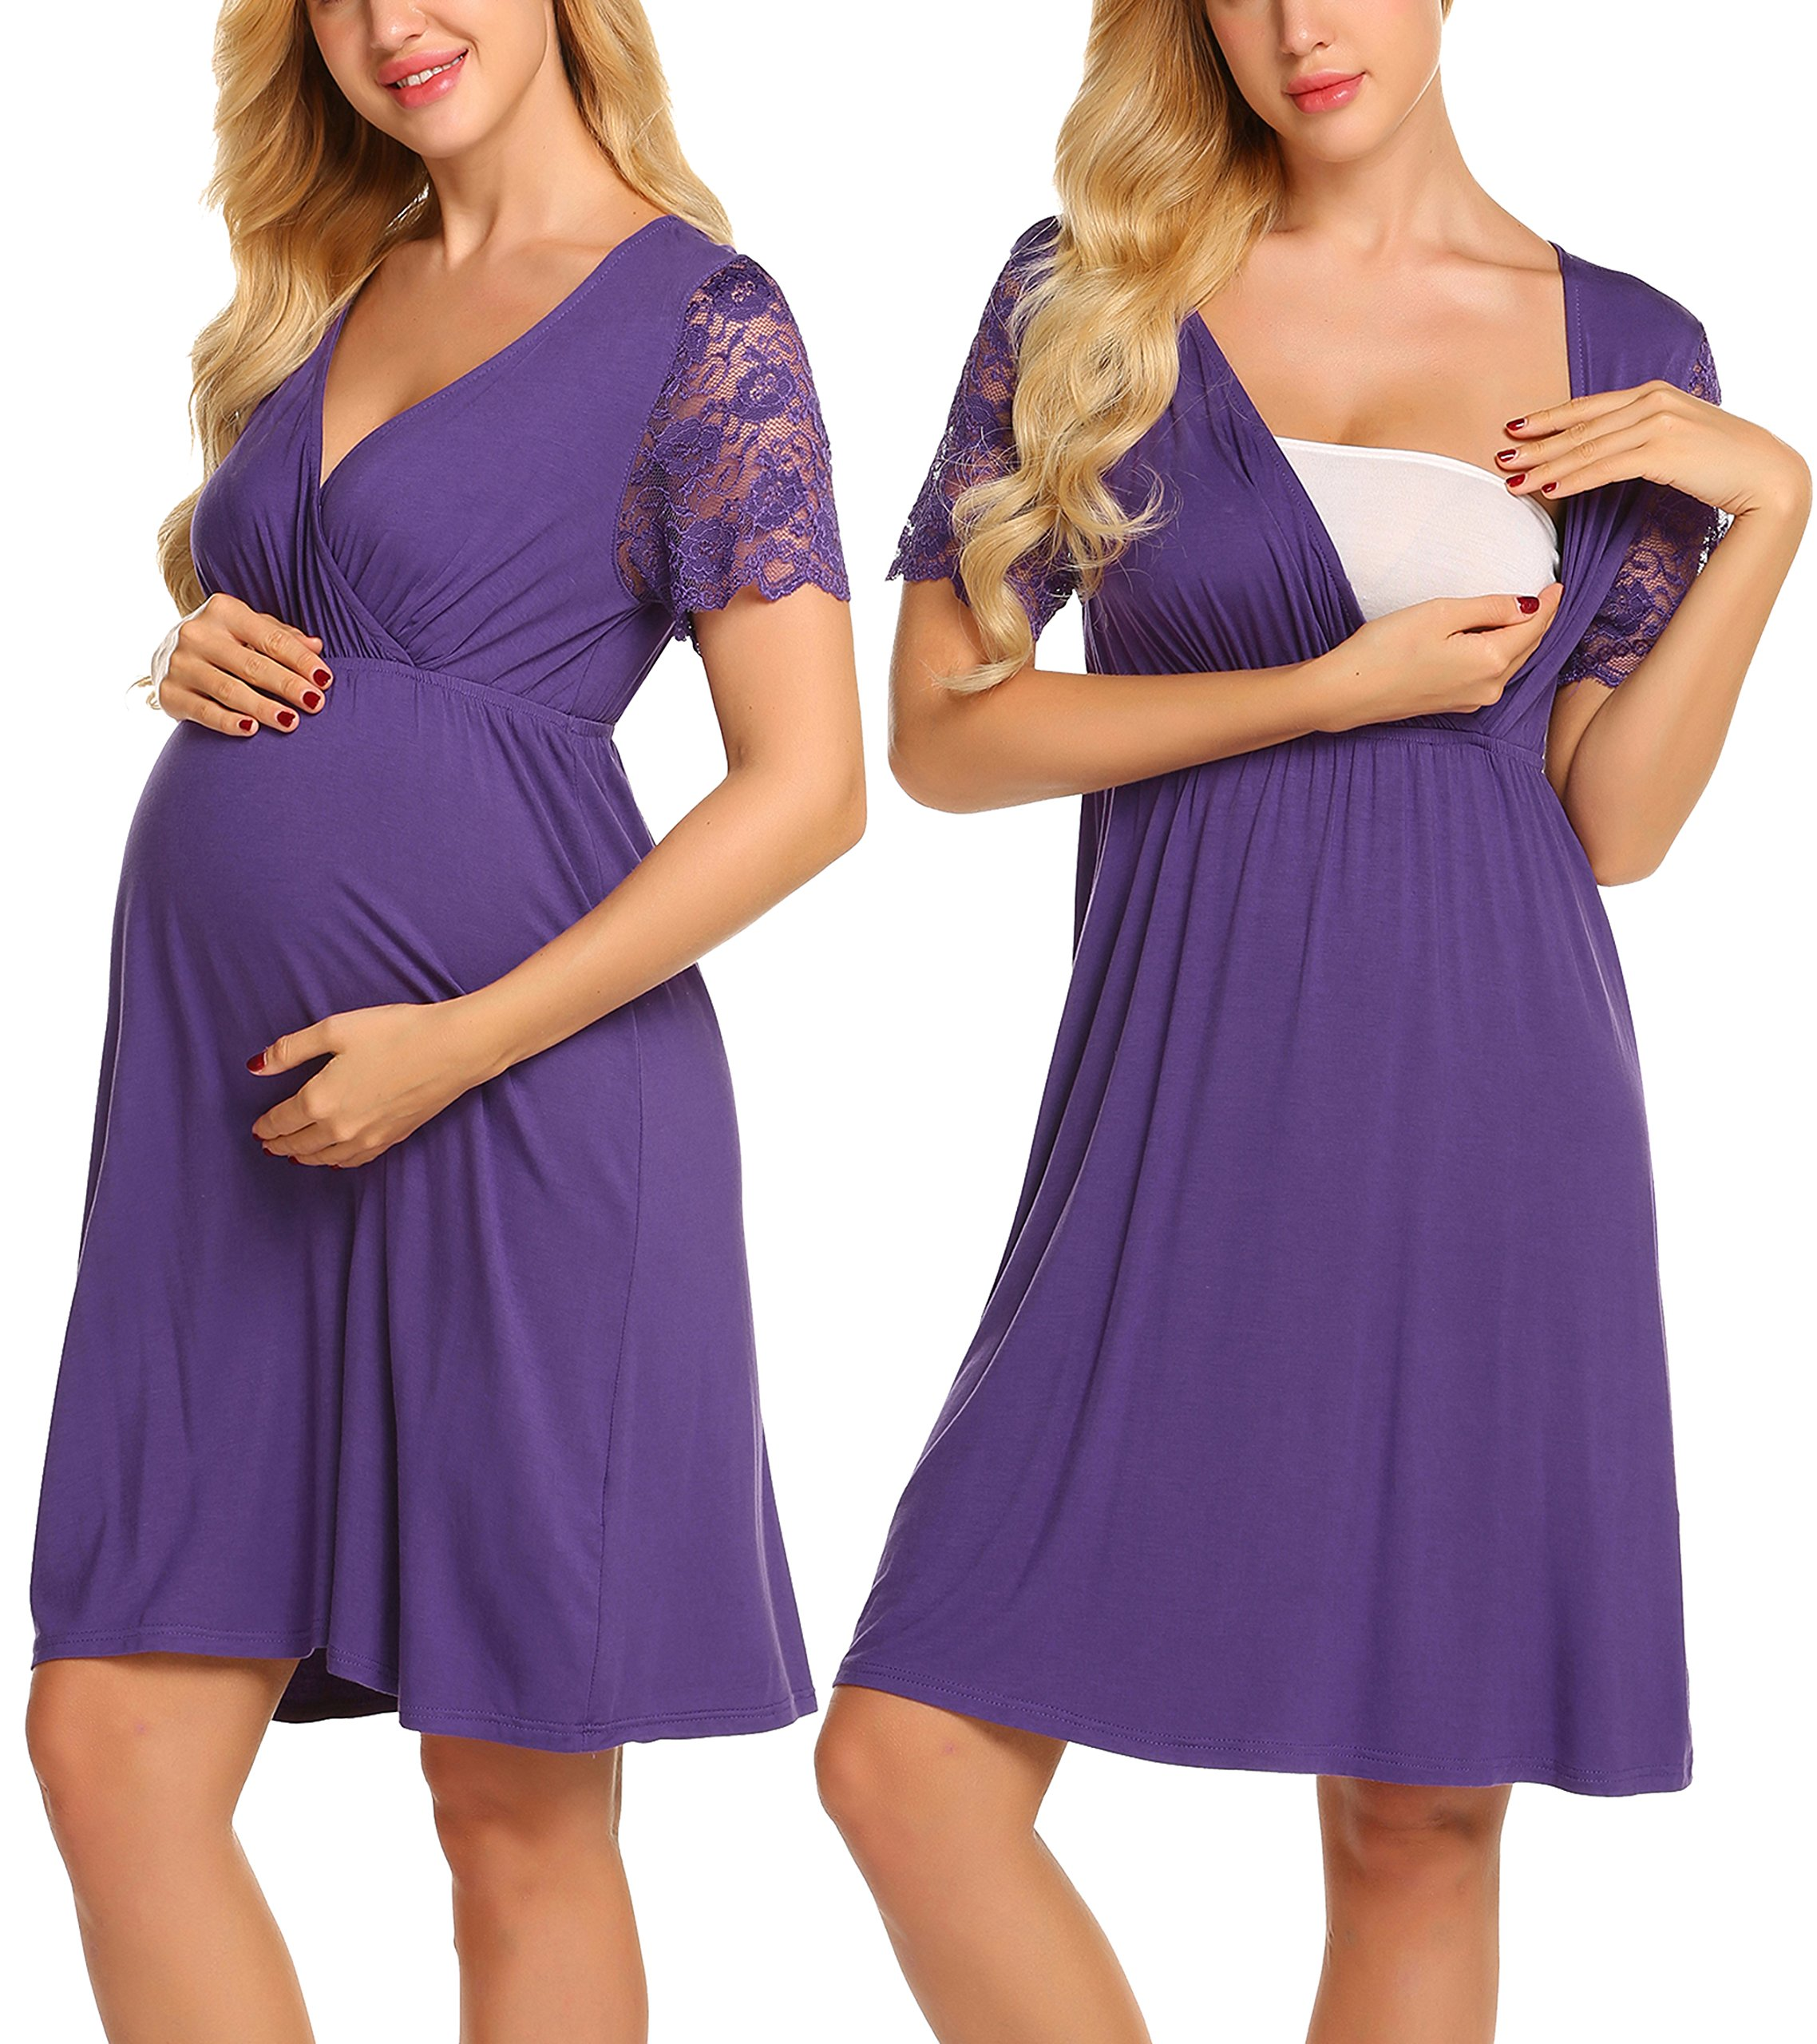 MAXMODA Womens' Maternity Nightgown Wrap Sleep Dress Solid Color Night Suits Casual Top (Purple/M)